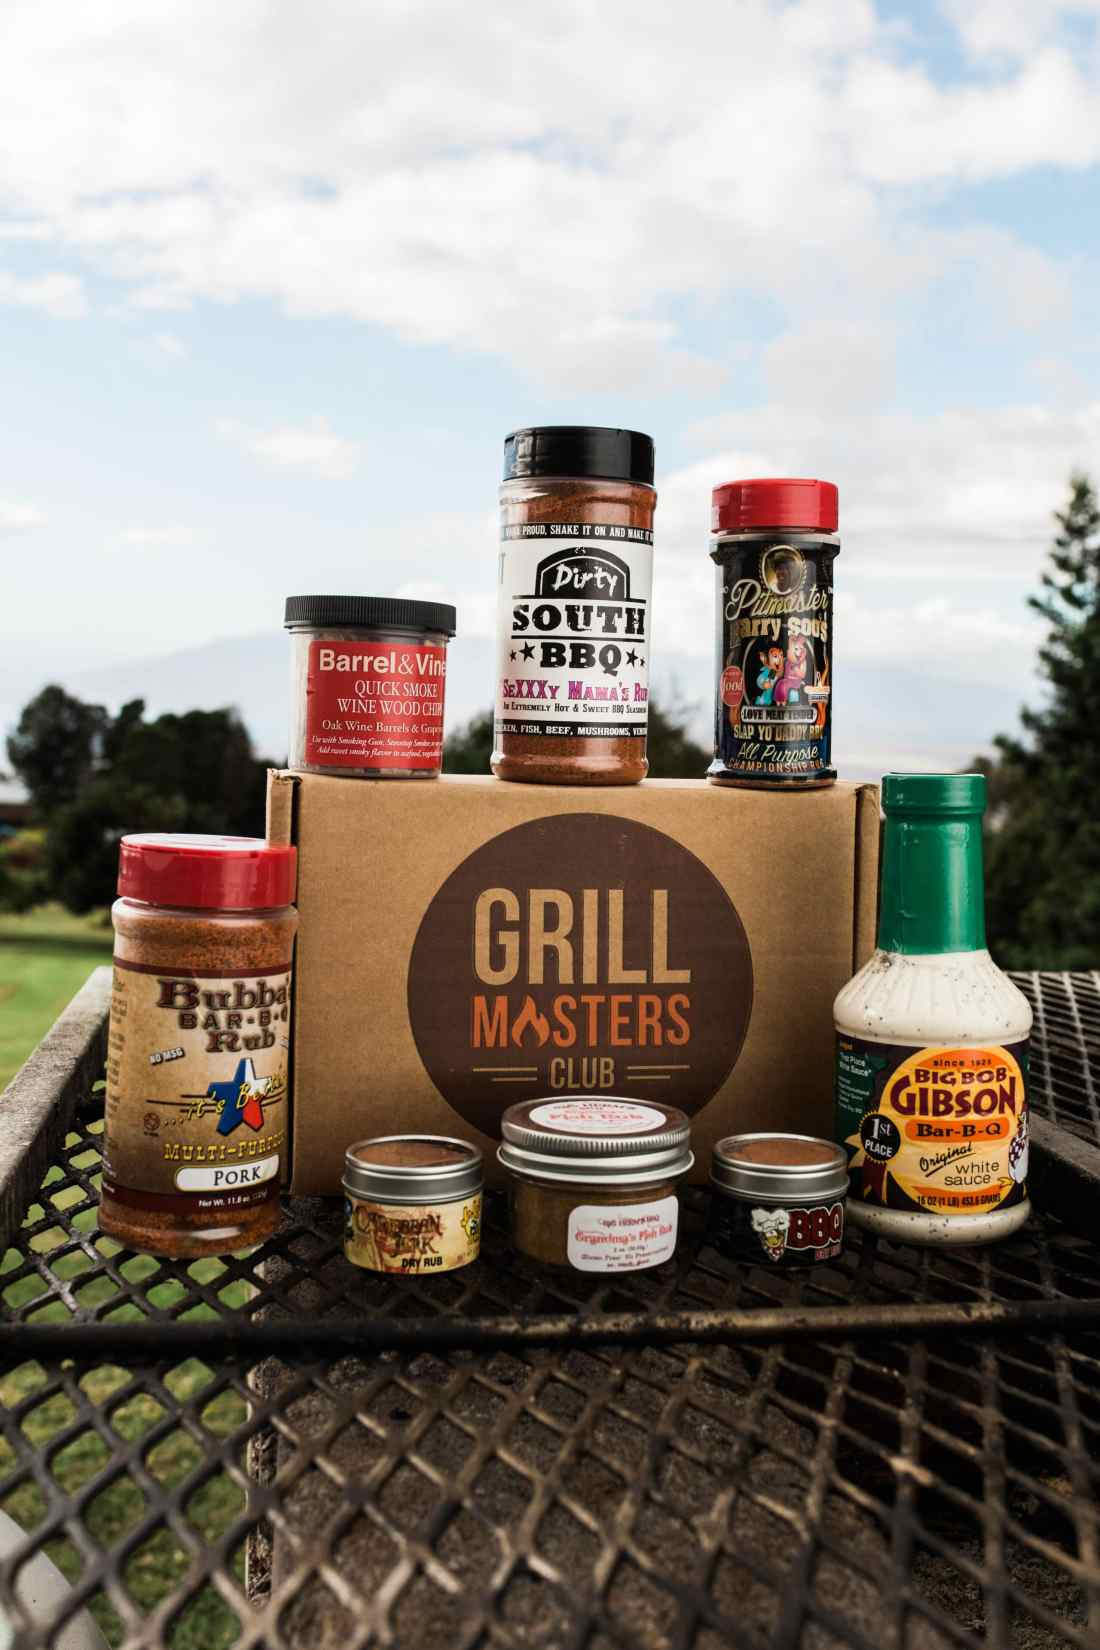 Grill Masters Club Monthly Subscription Box. Love grilling, smoking, and bbq? Read more about the hottest gifts of the season on my blog.